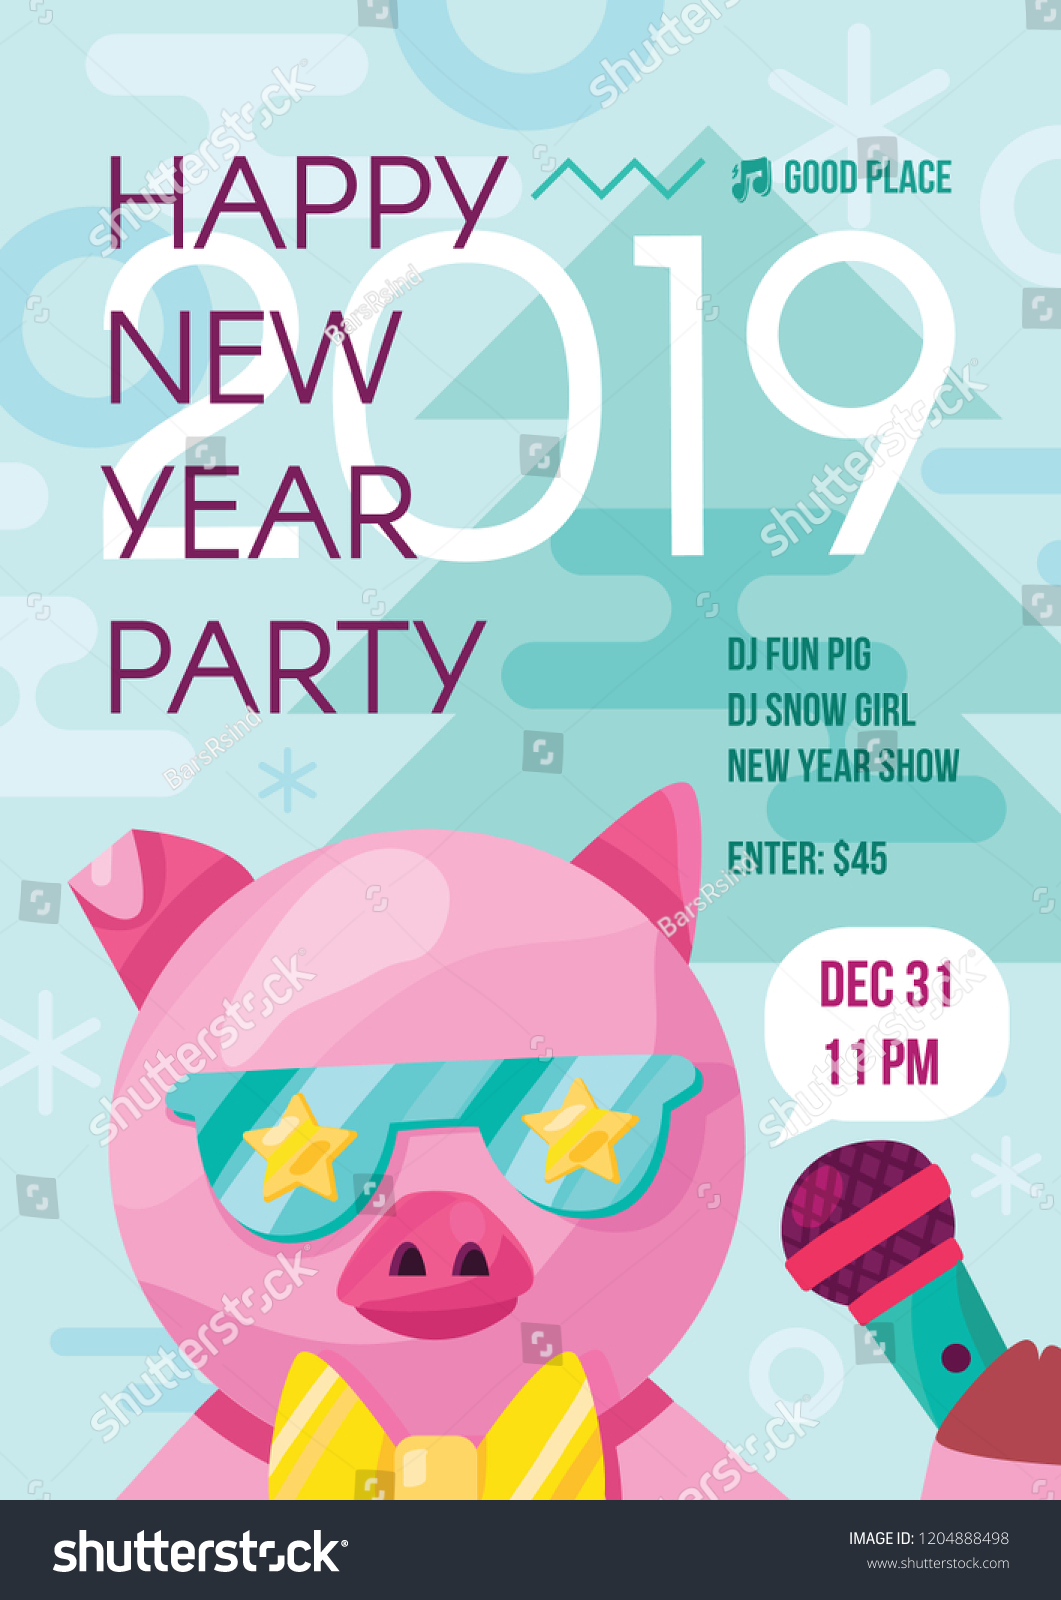 fun stylish happy 2019 new year party flyer with nice pig in bright color theme for